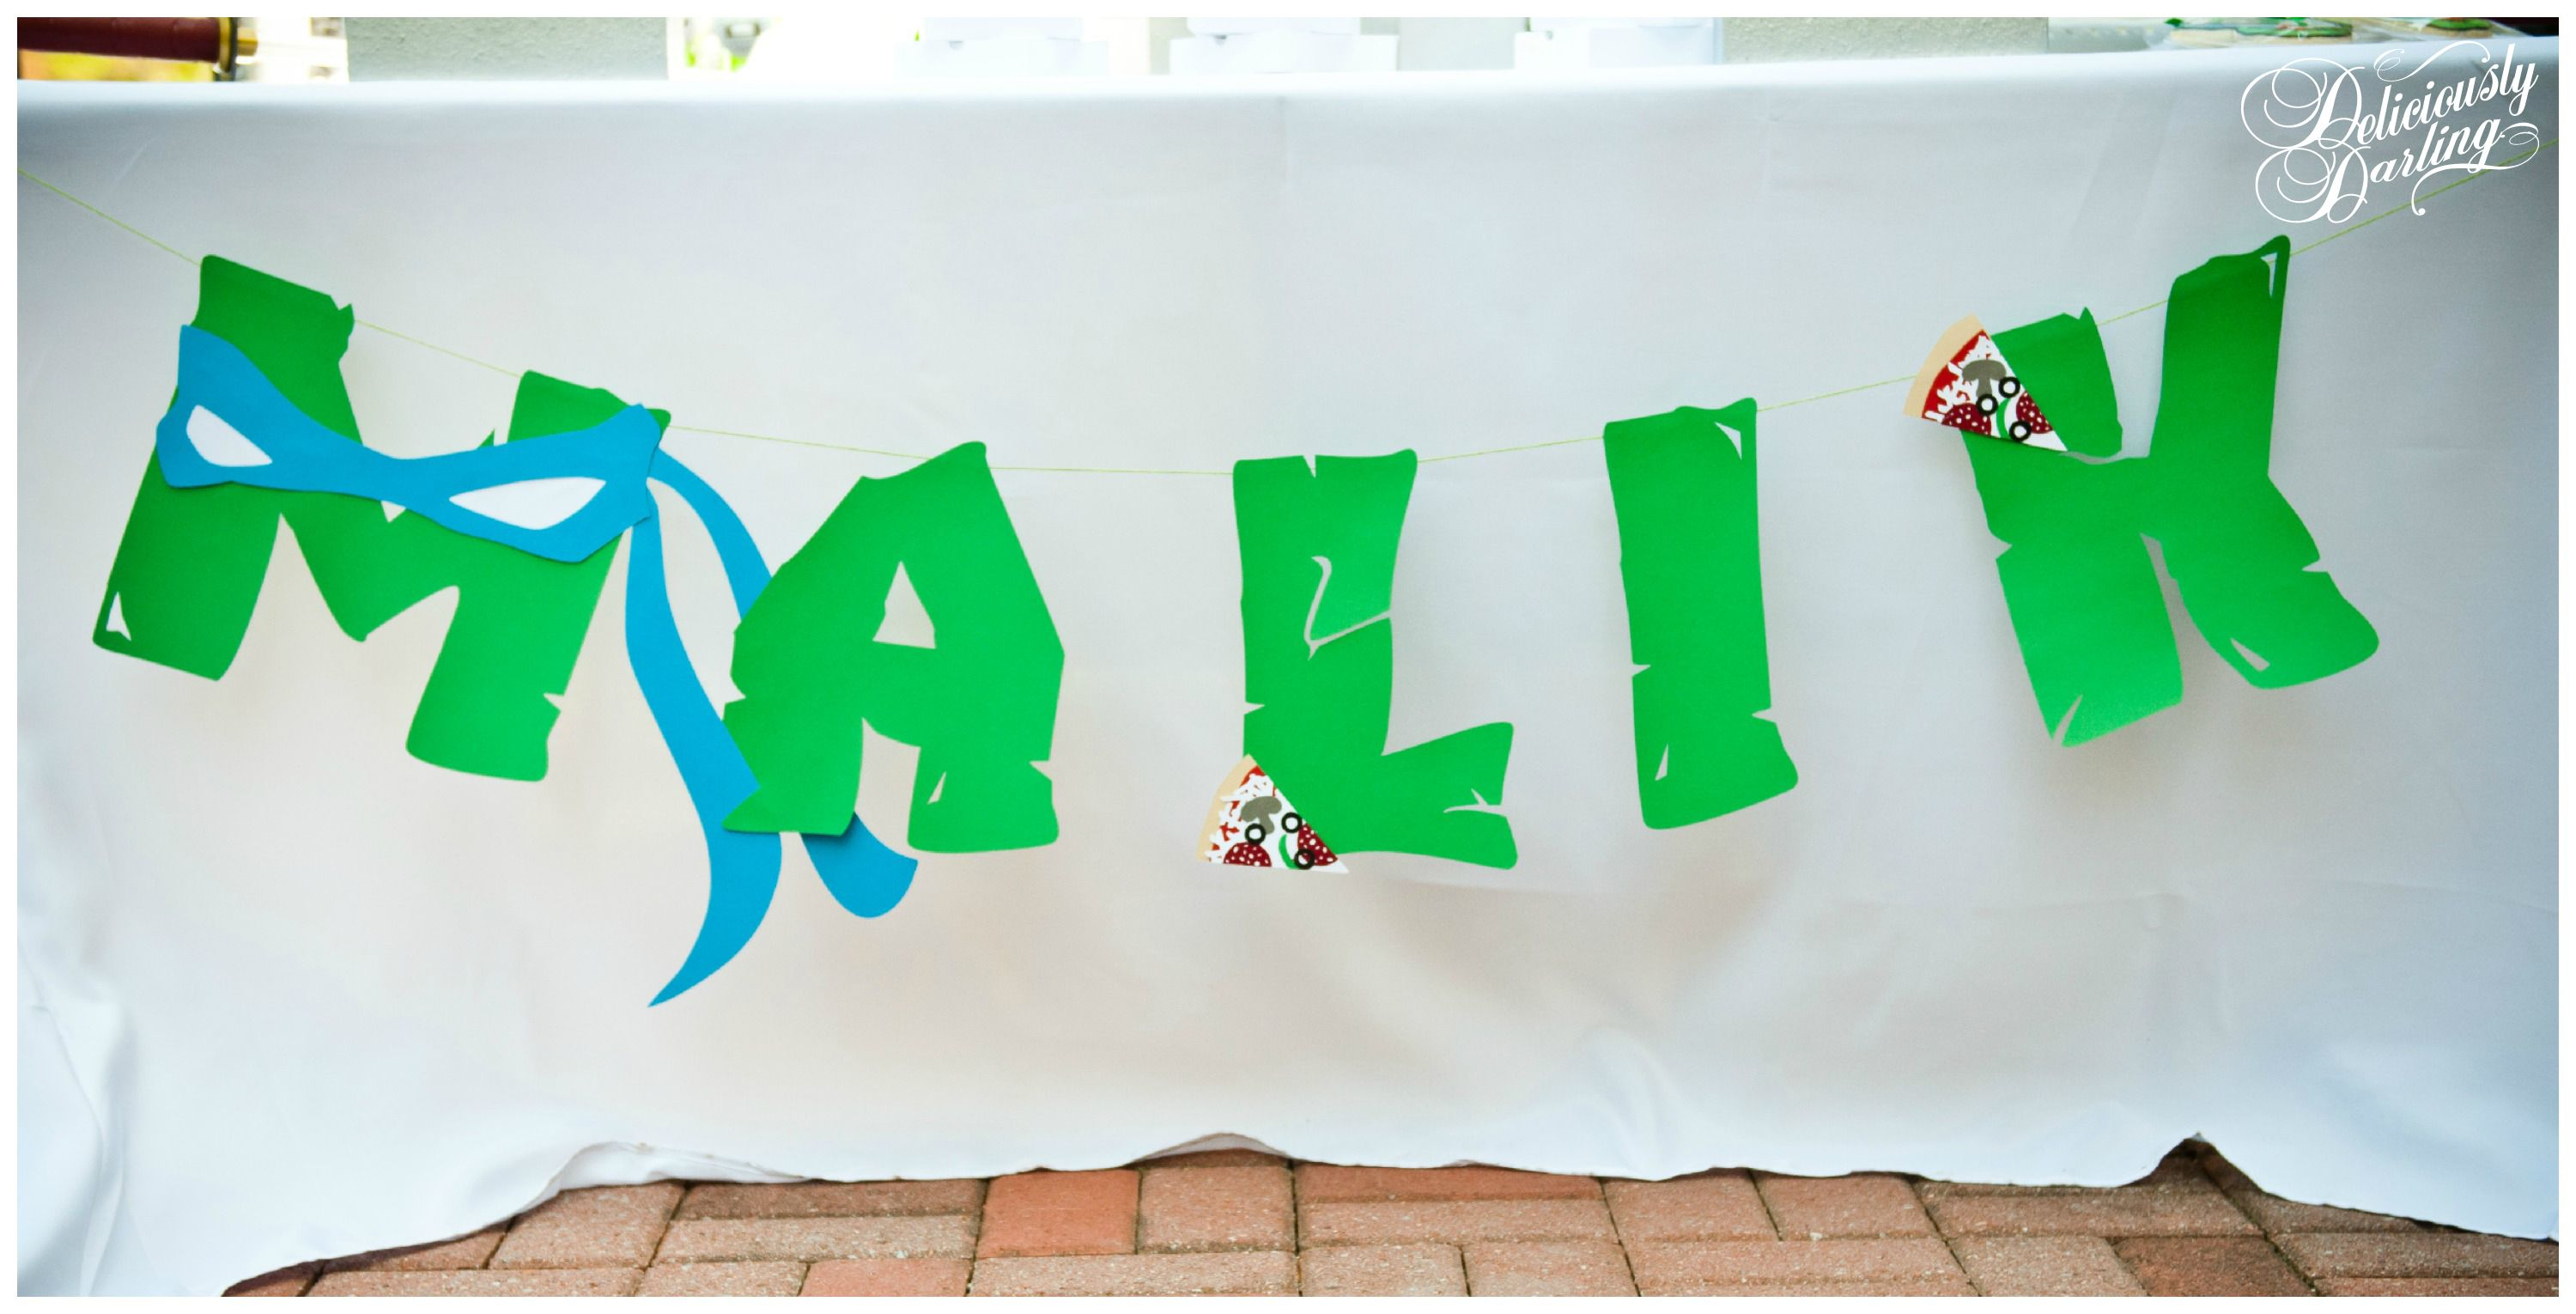 Deliciously Darling   Teenage Mutant Ninja Turtle Birthday Party   Desserts- This banner is fantastic!